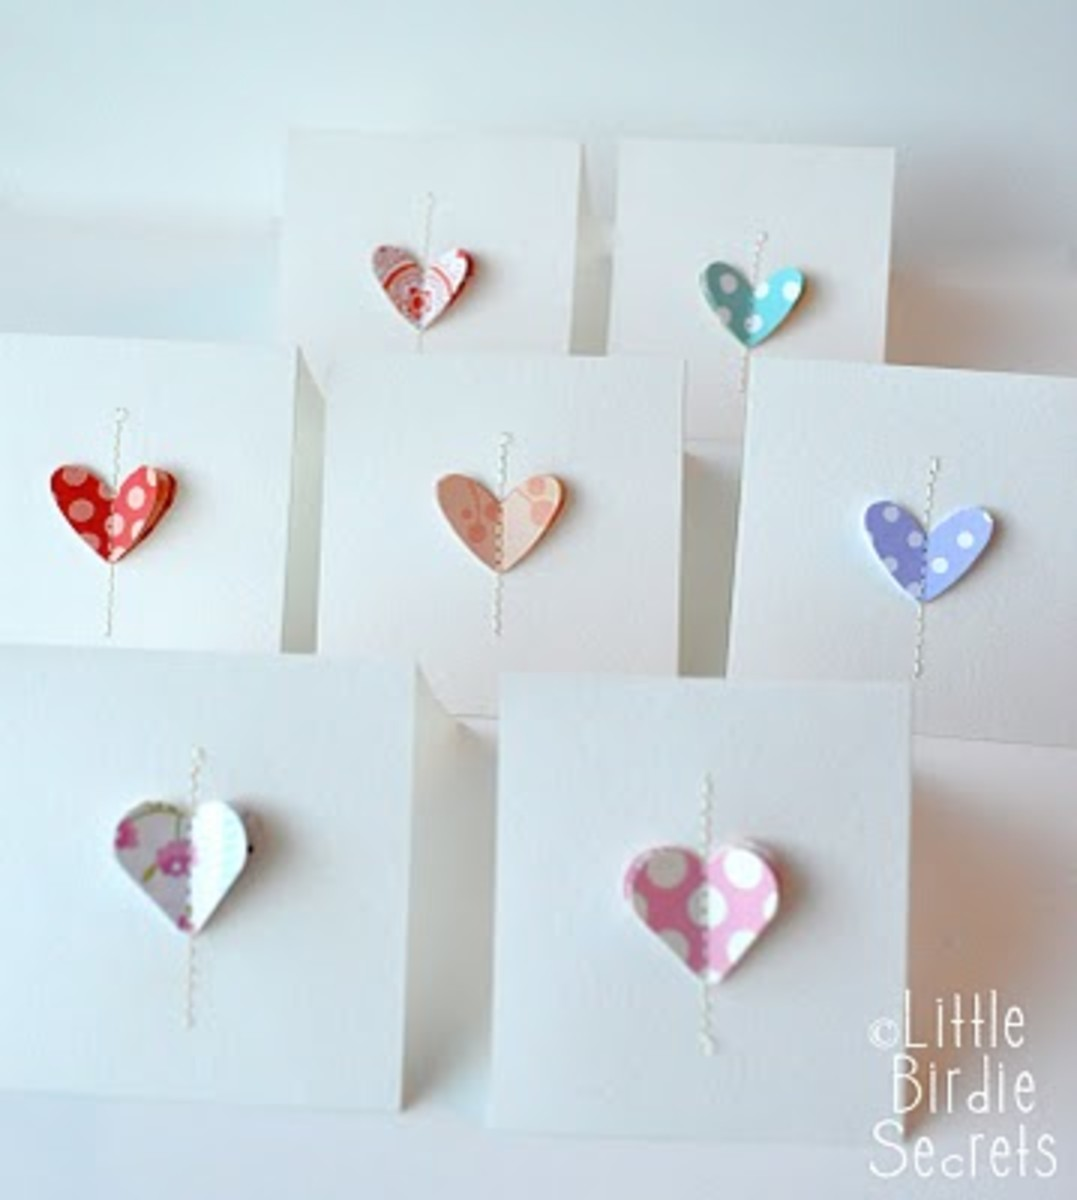 Handmade Valentine's Day Card Crafts, Great for Kids to Make